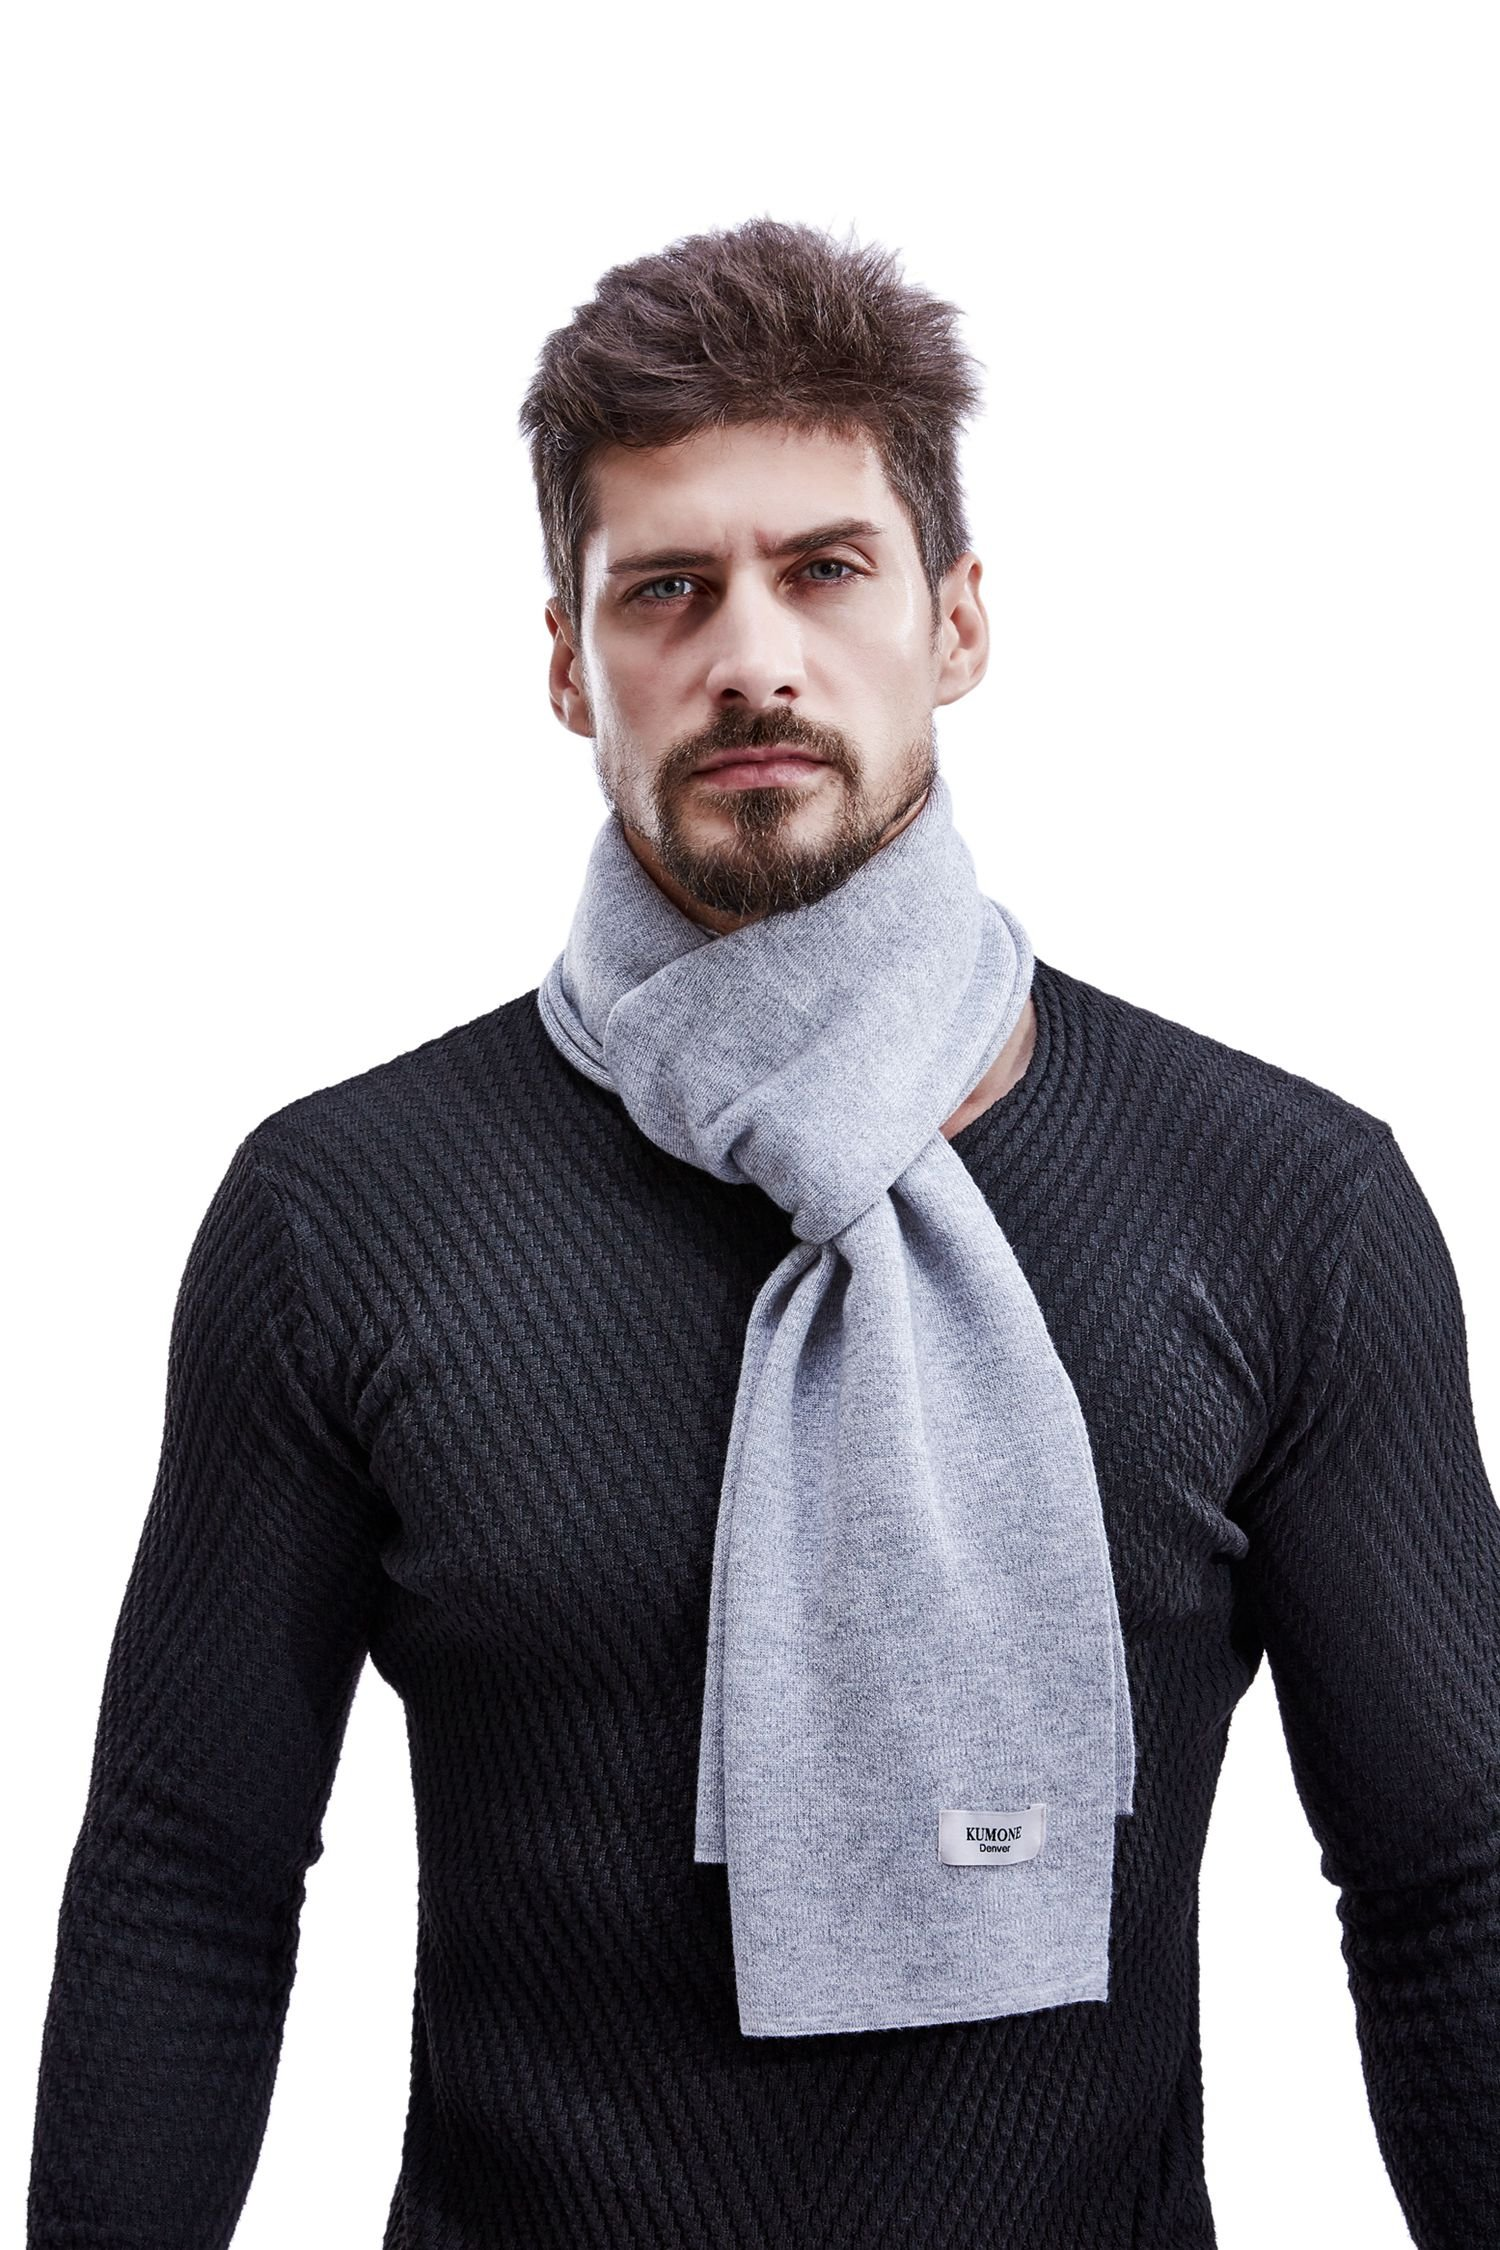 KUMONE Men Scarf Cashmere Winter Knit Wool Scarves with Gift Bag, Gray